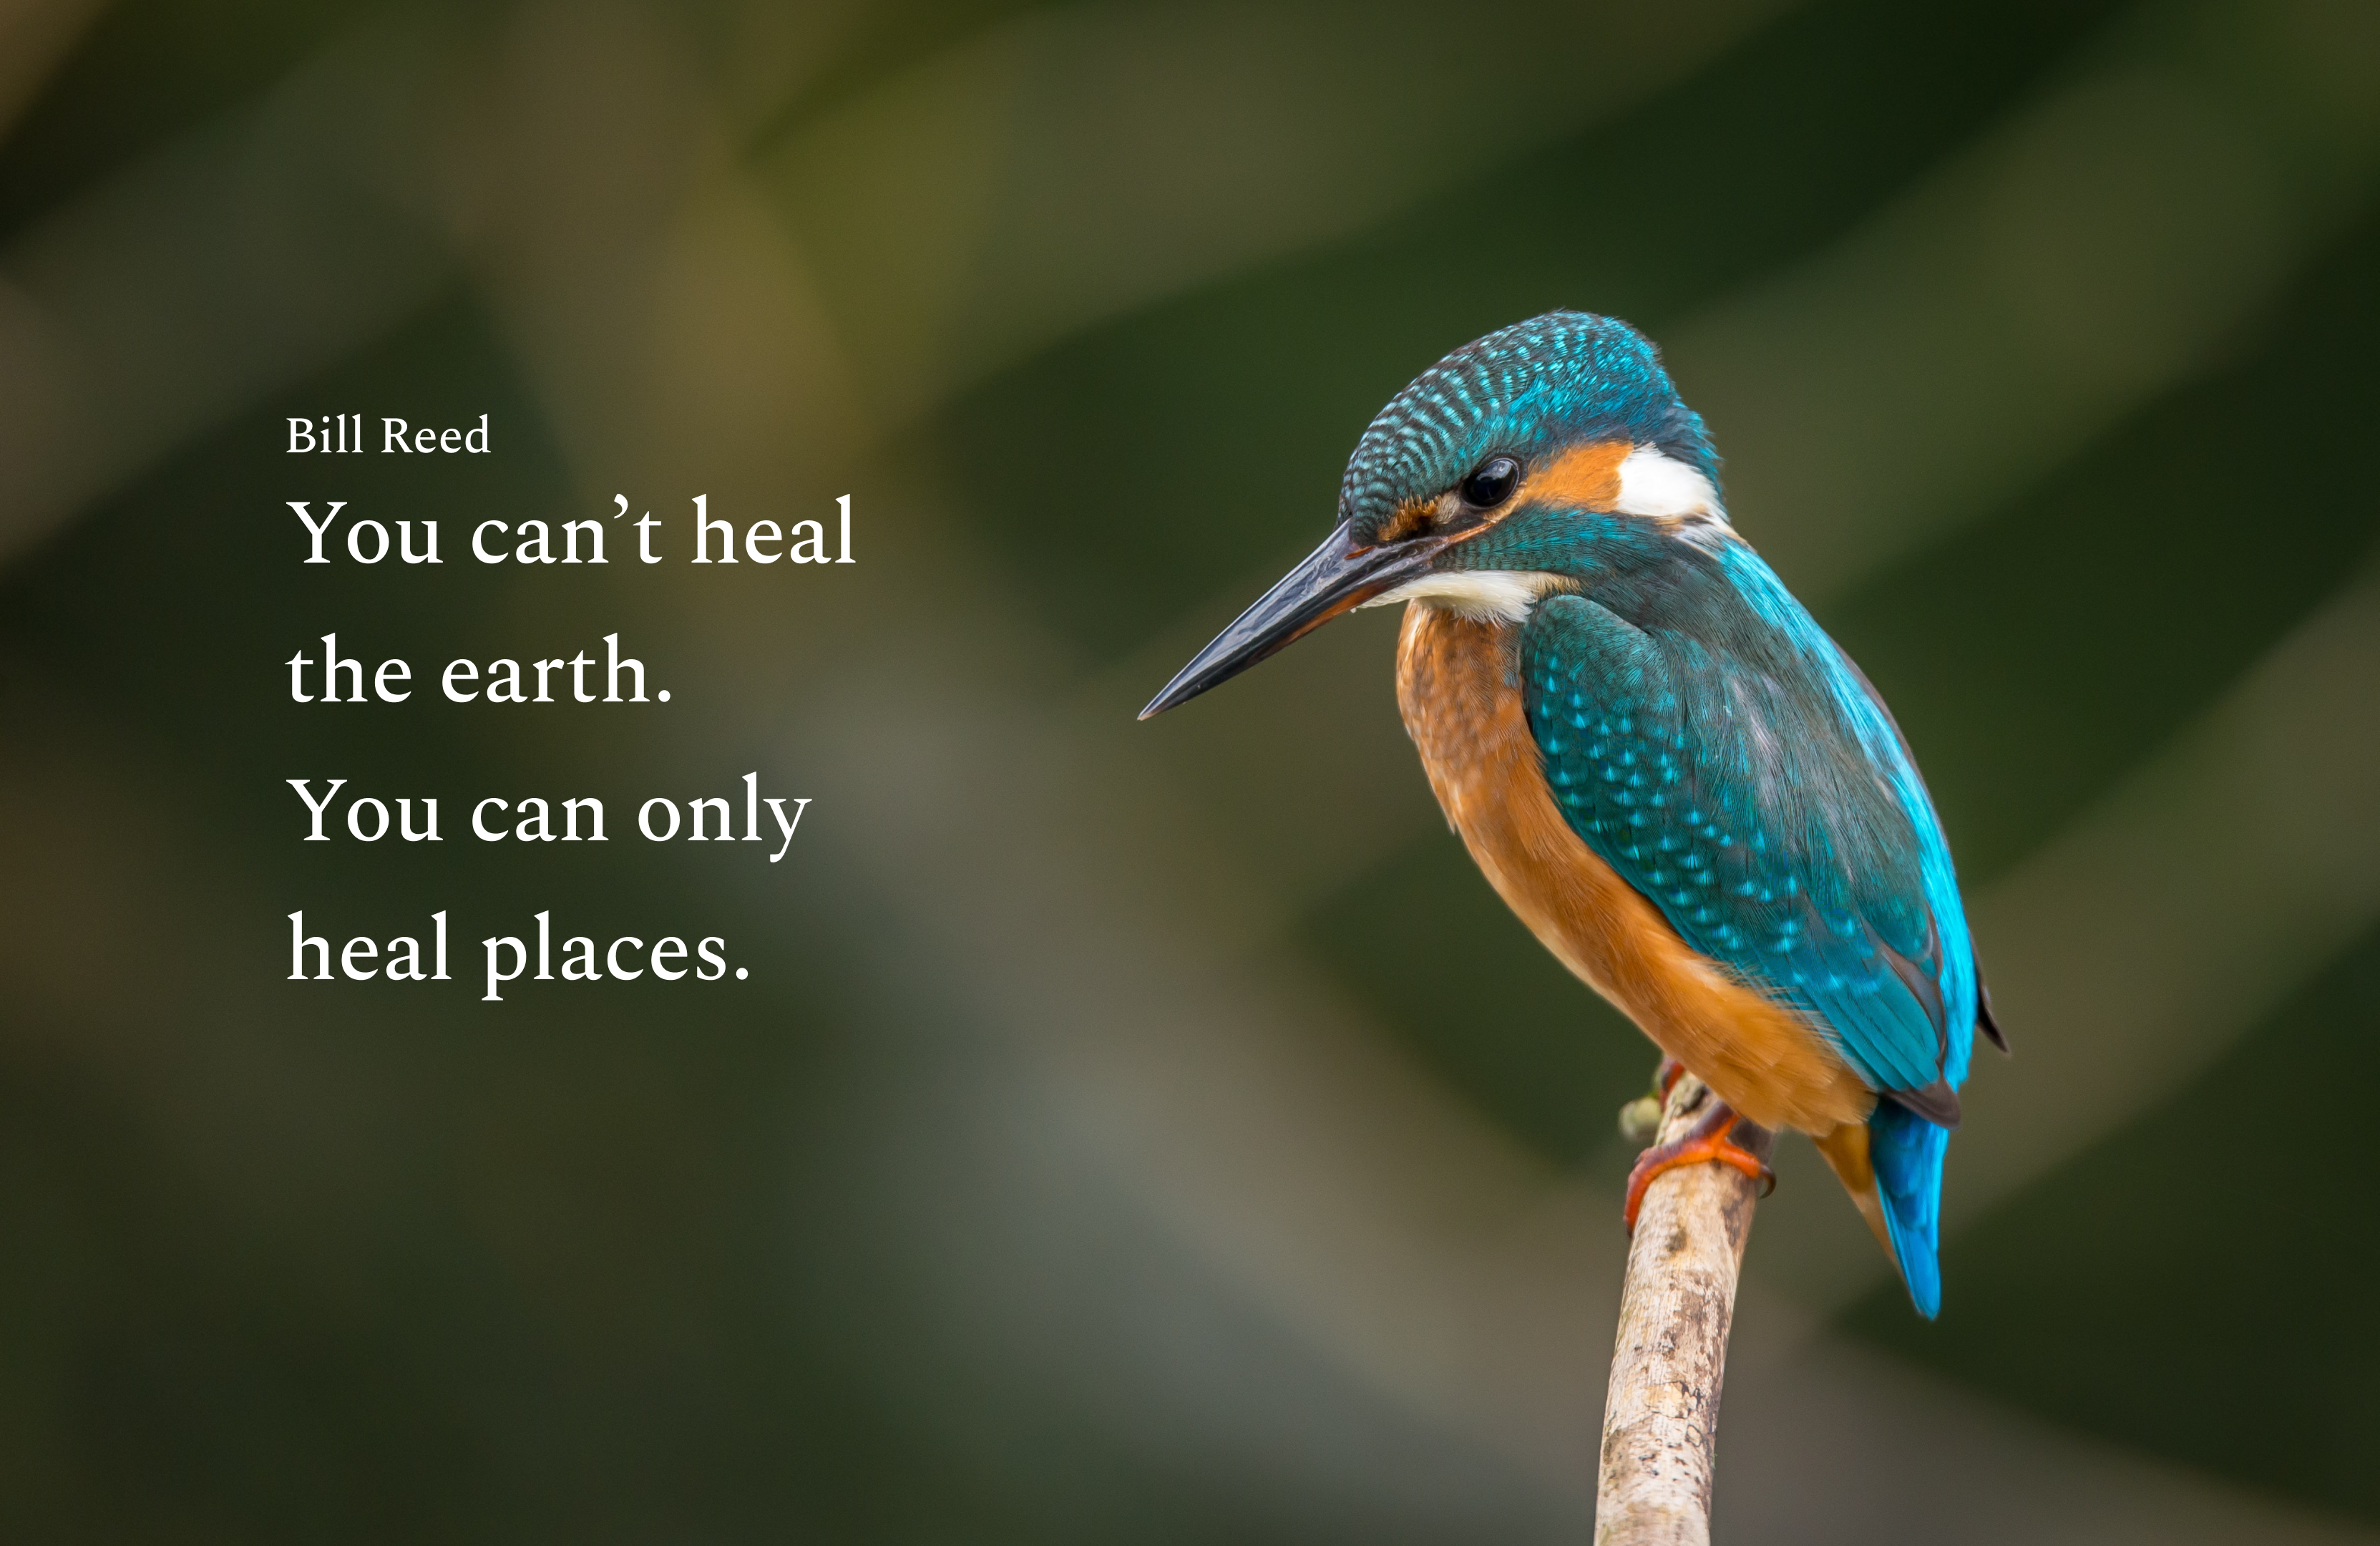 You can't heal the earth. You can only heal places.